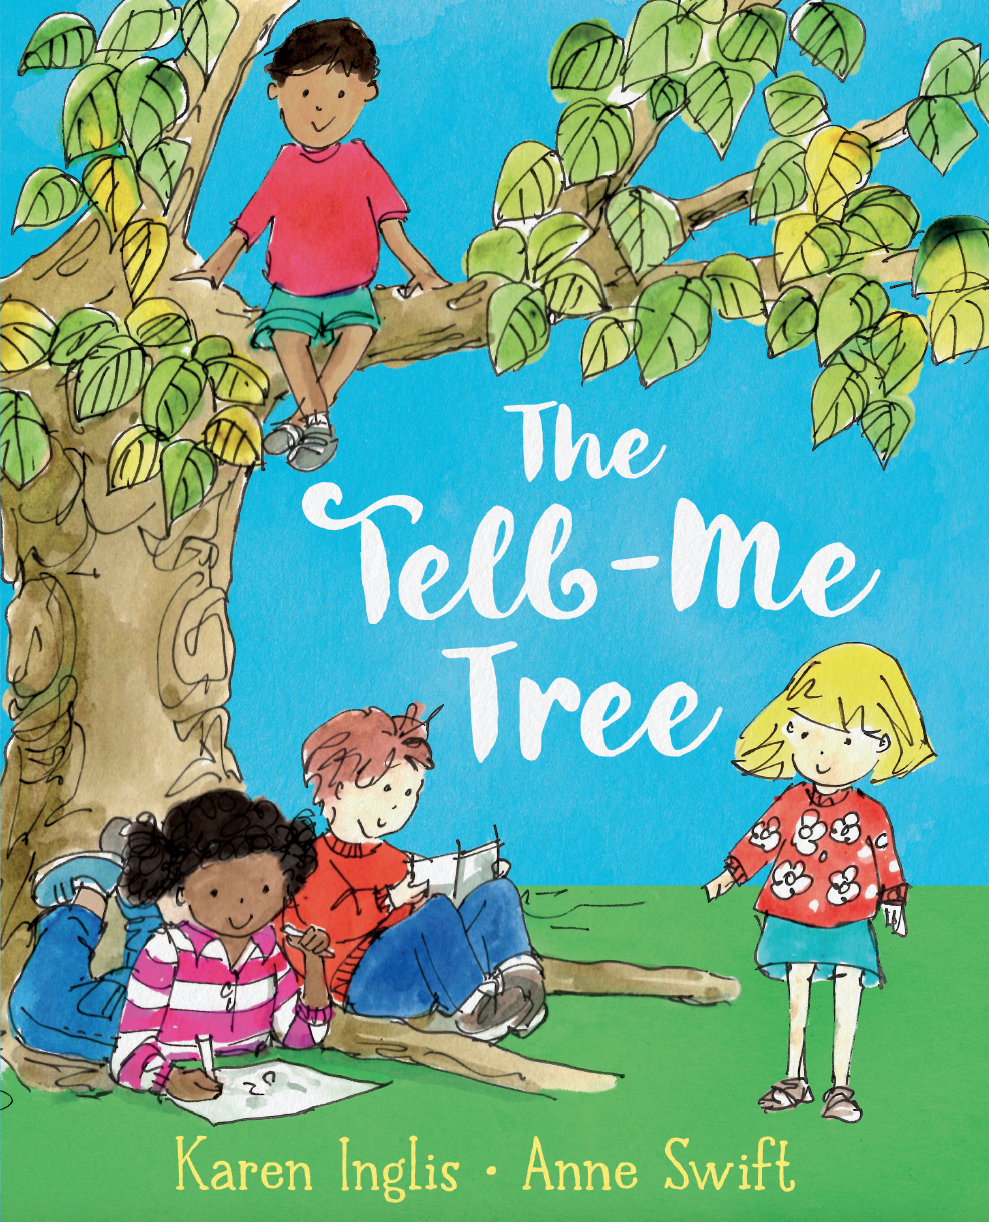 Children sitting below a tree talking, reading and drawing, with one little boy sitting up on the tree branch